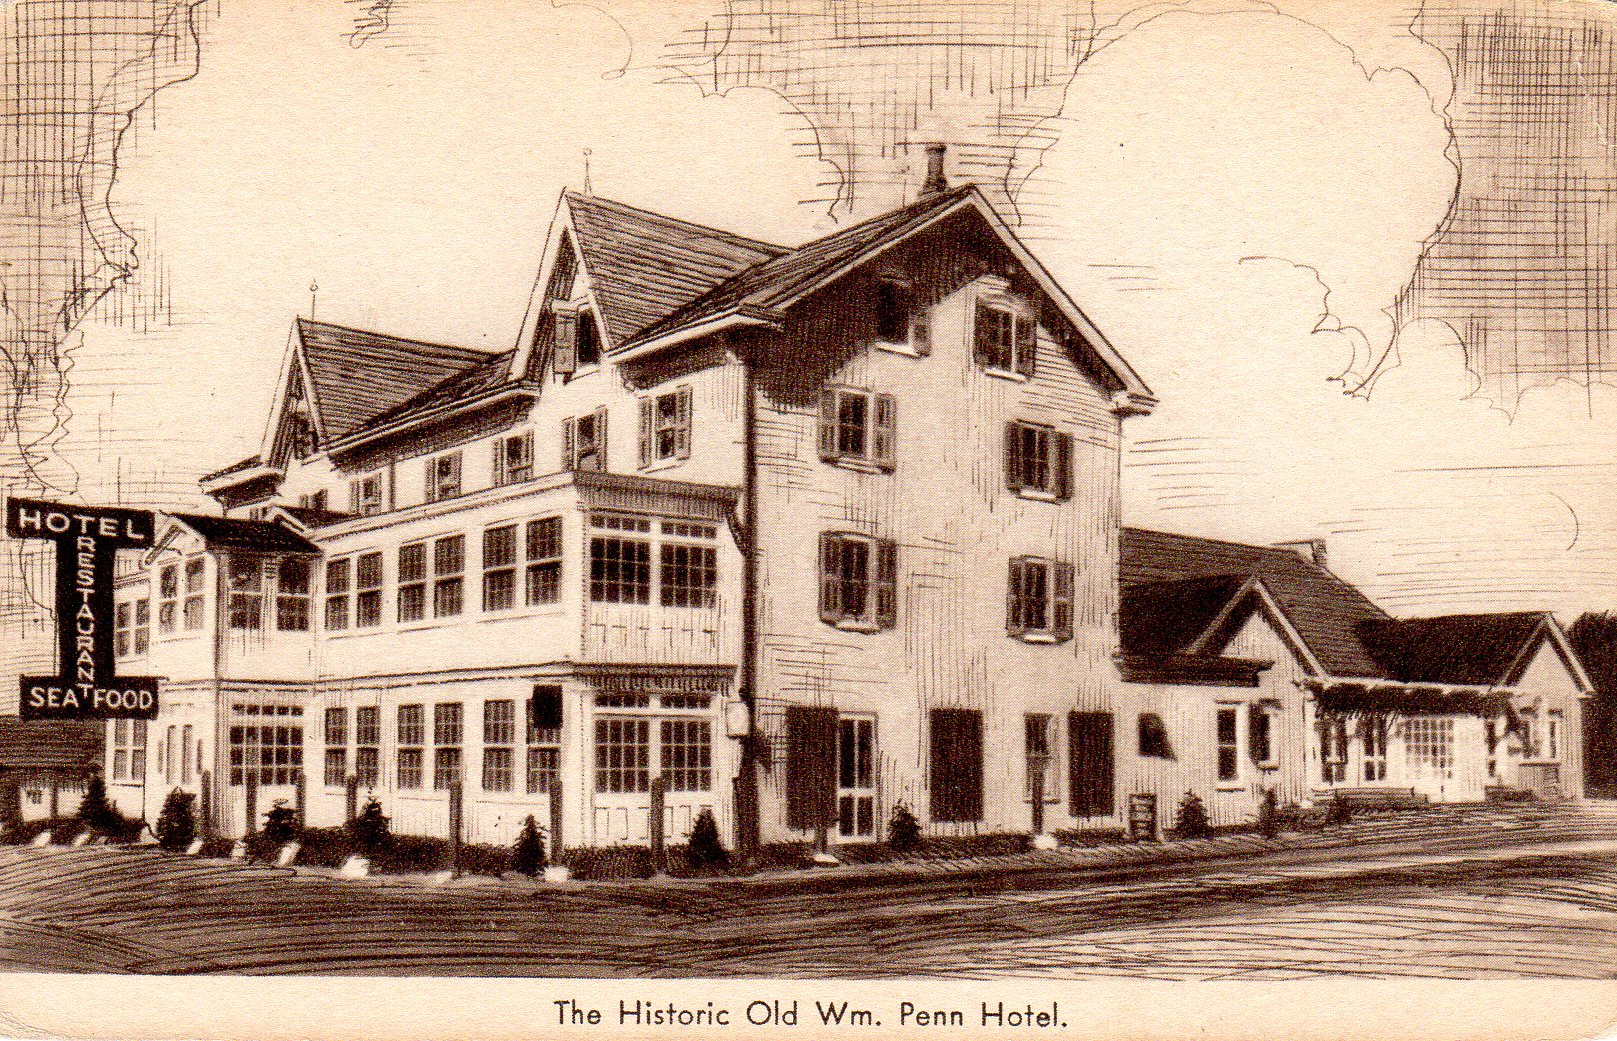 Post Card Collection (E Simon)_2682_84_The Historic Old William Penn Hotel